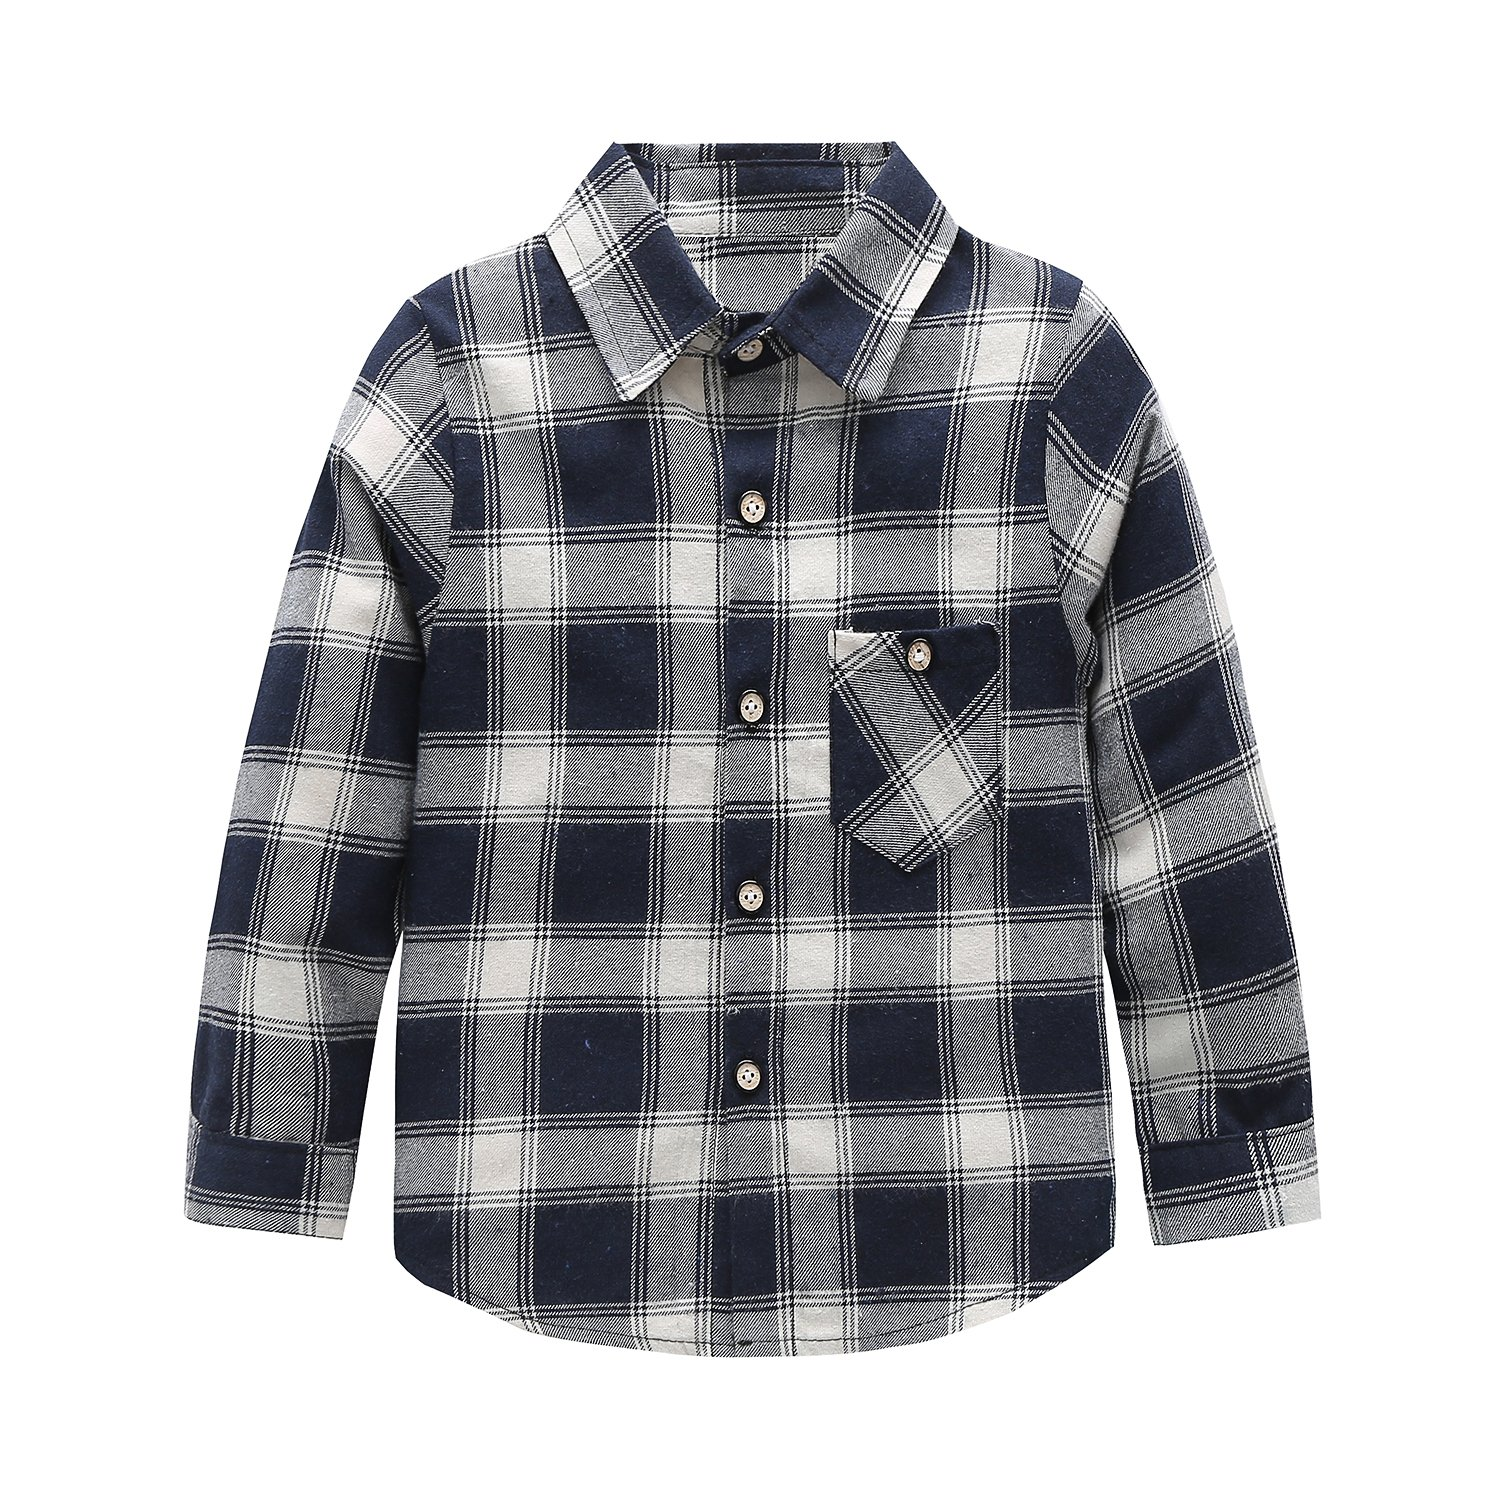 c2514895 Long-sleeve plaid shirt with button-front placket. Soft durable fabric  feels great against the skin comfortable to wear. Five plaid colors to  choose from, ...